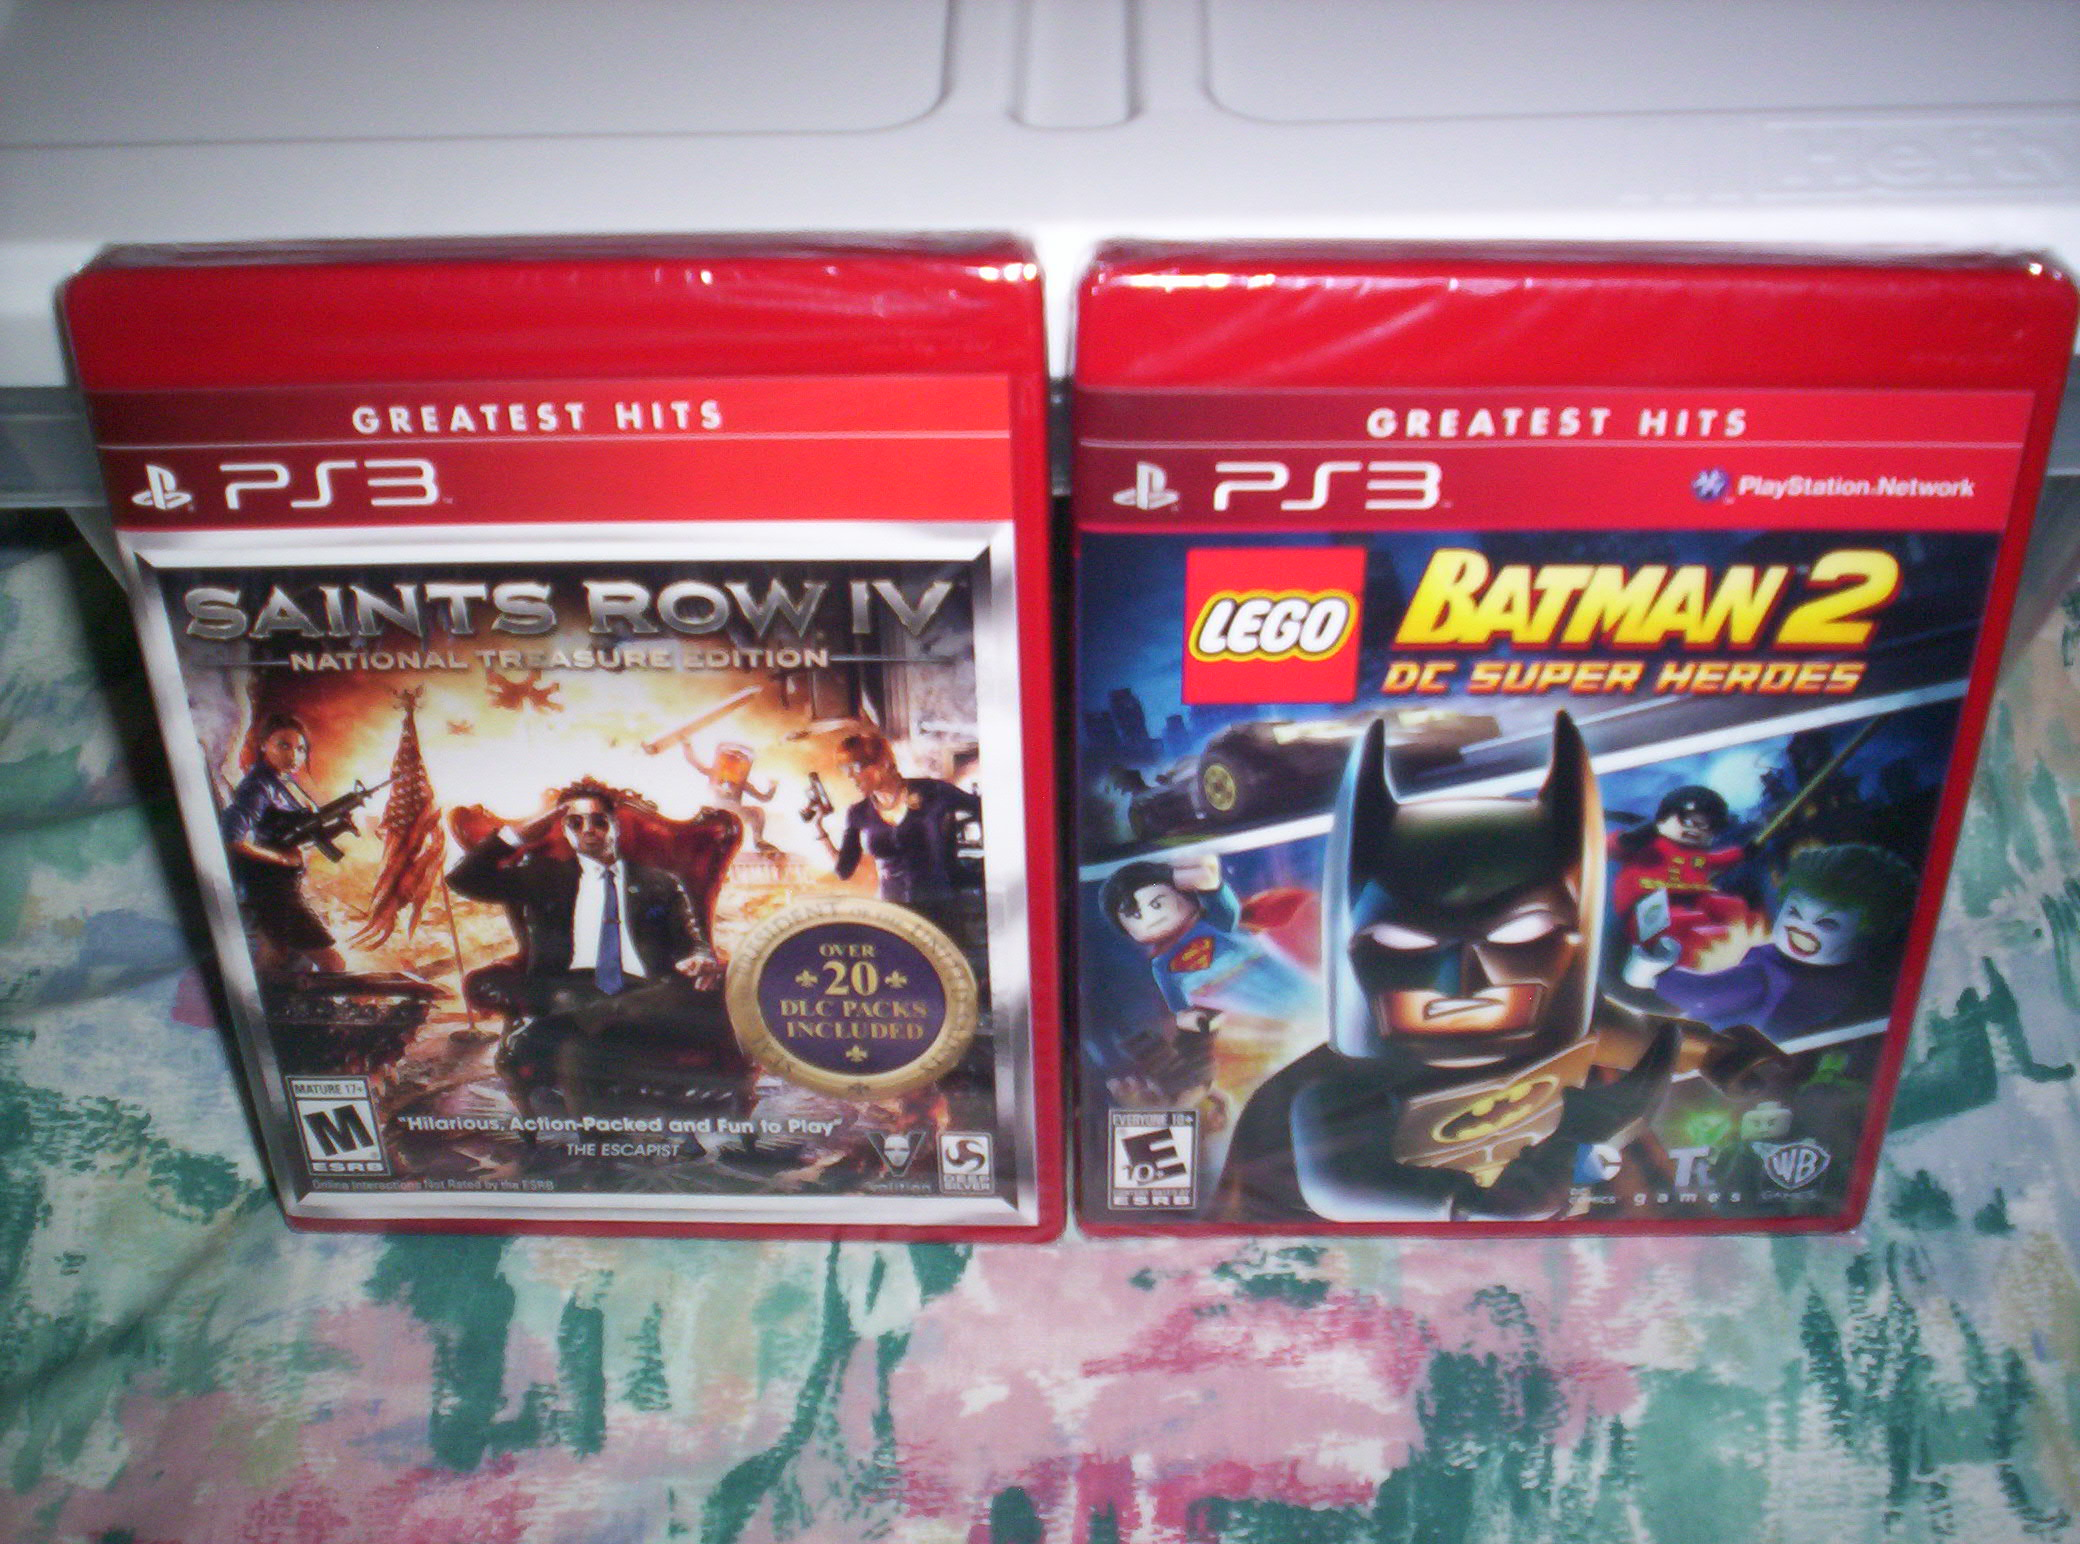 Videogame Shopping Trip Report 23 Pickups From Walmart